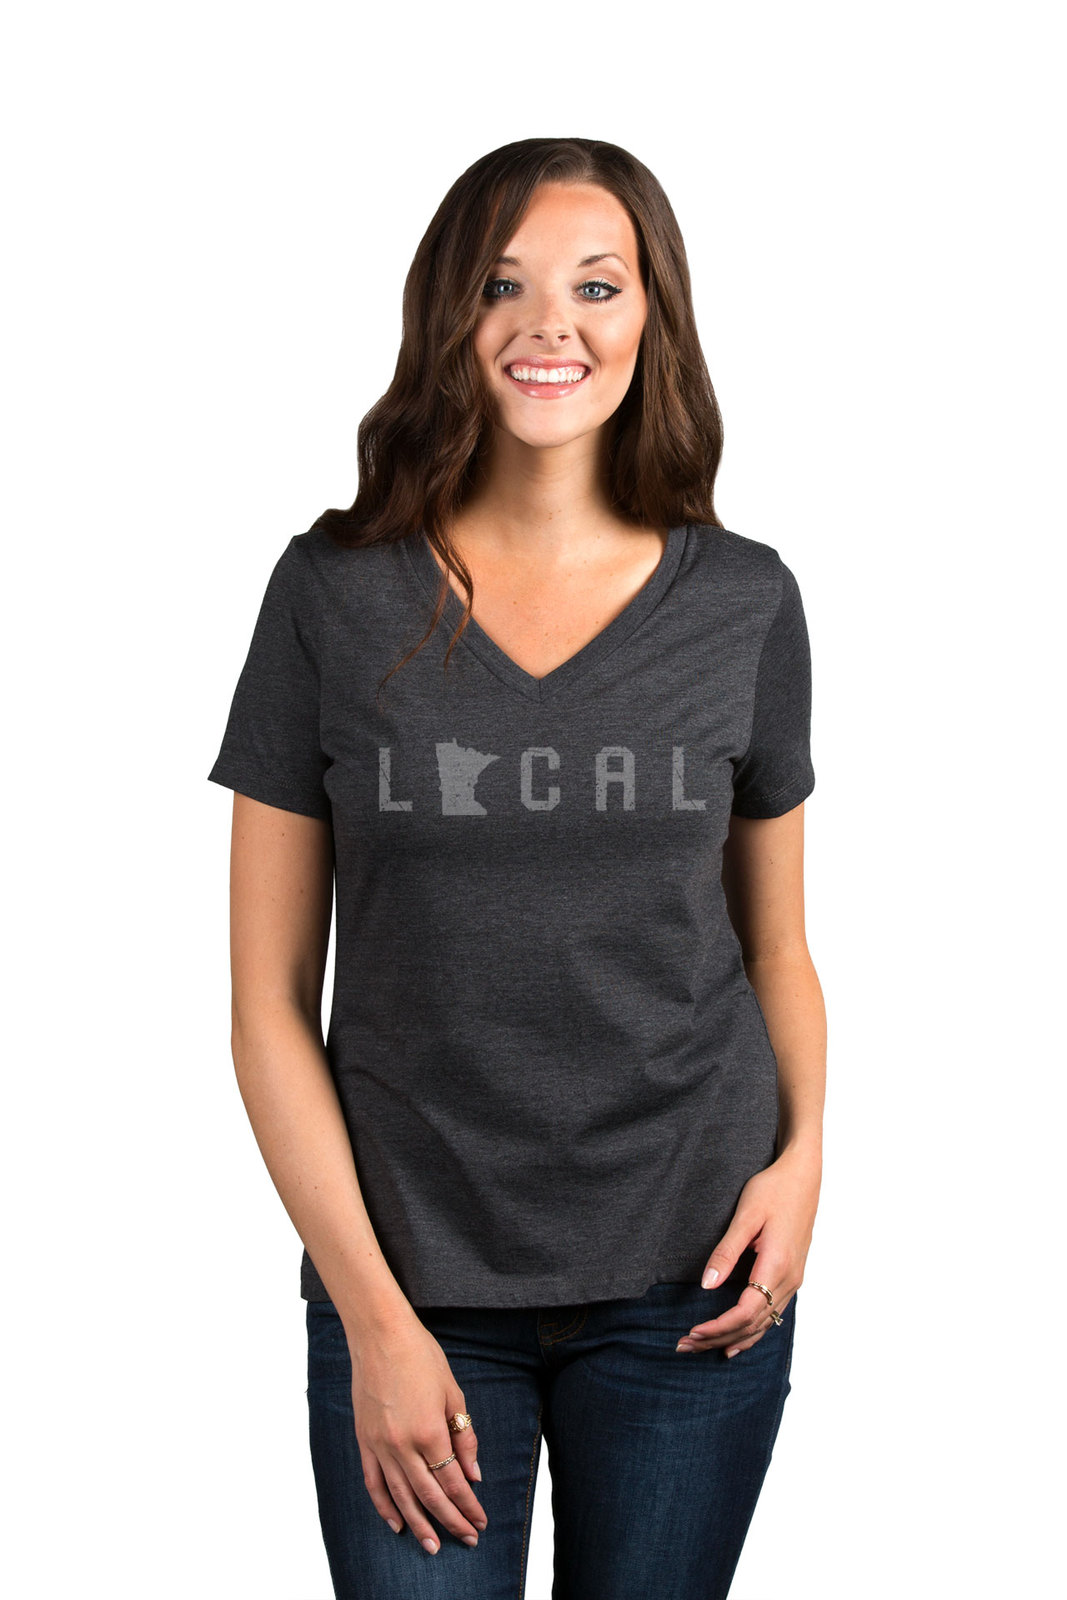 Thread Tank Local Minnesota State Women's Relaxed V-Neck T-Shirt Tee Charcoal